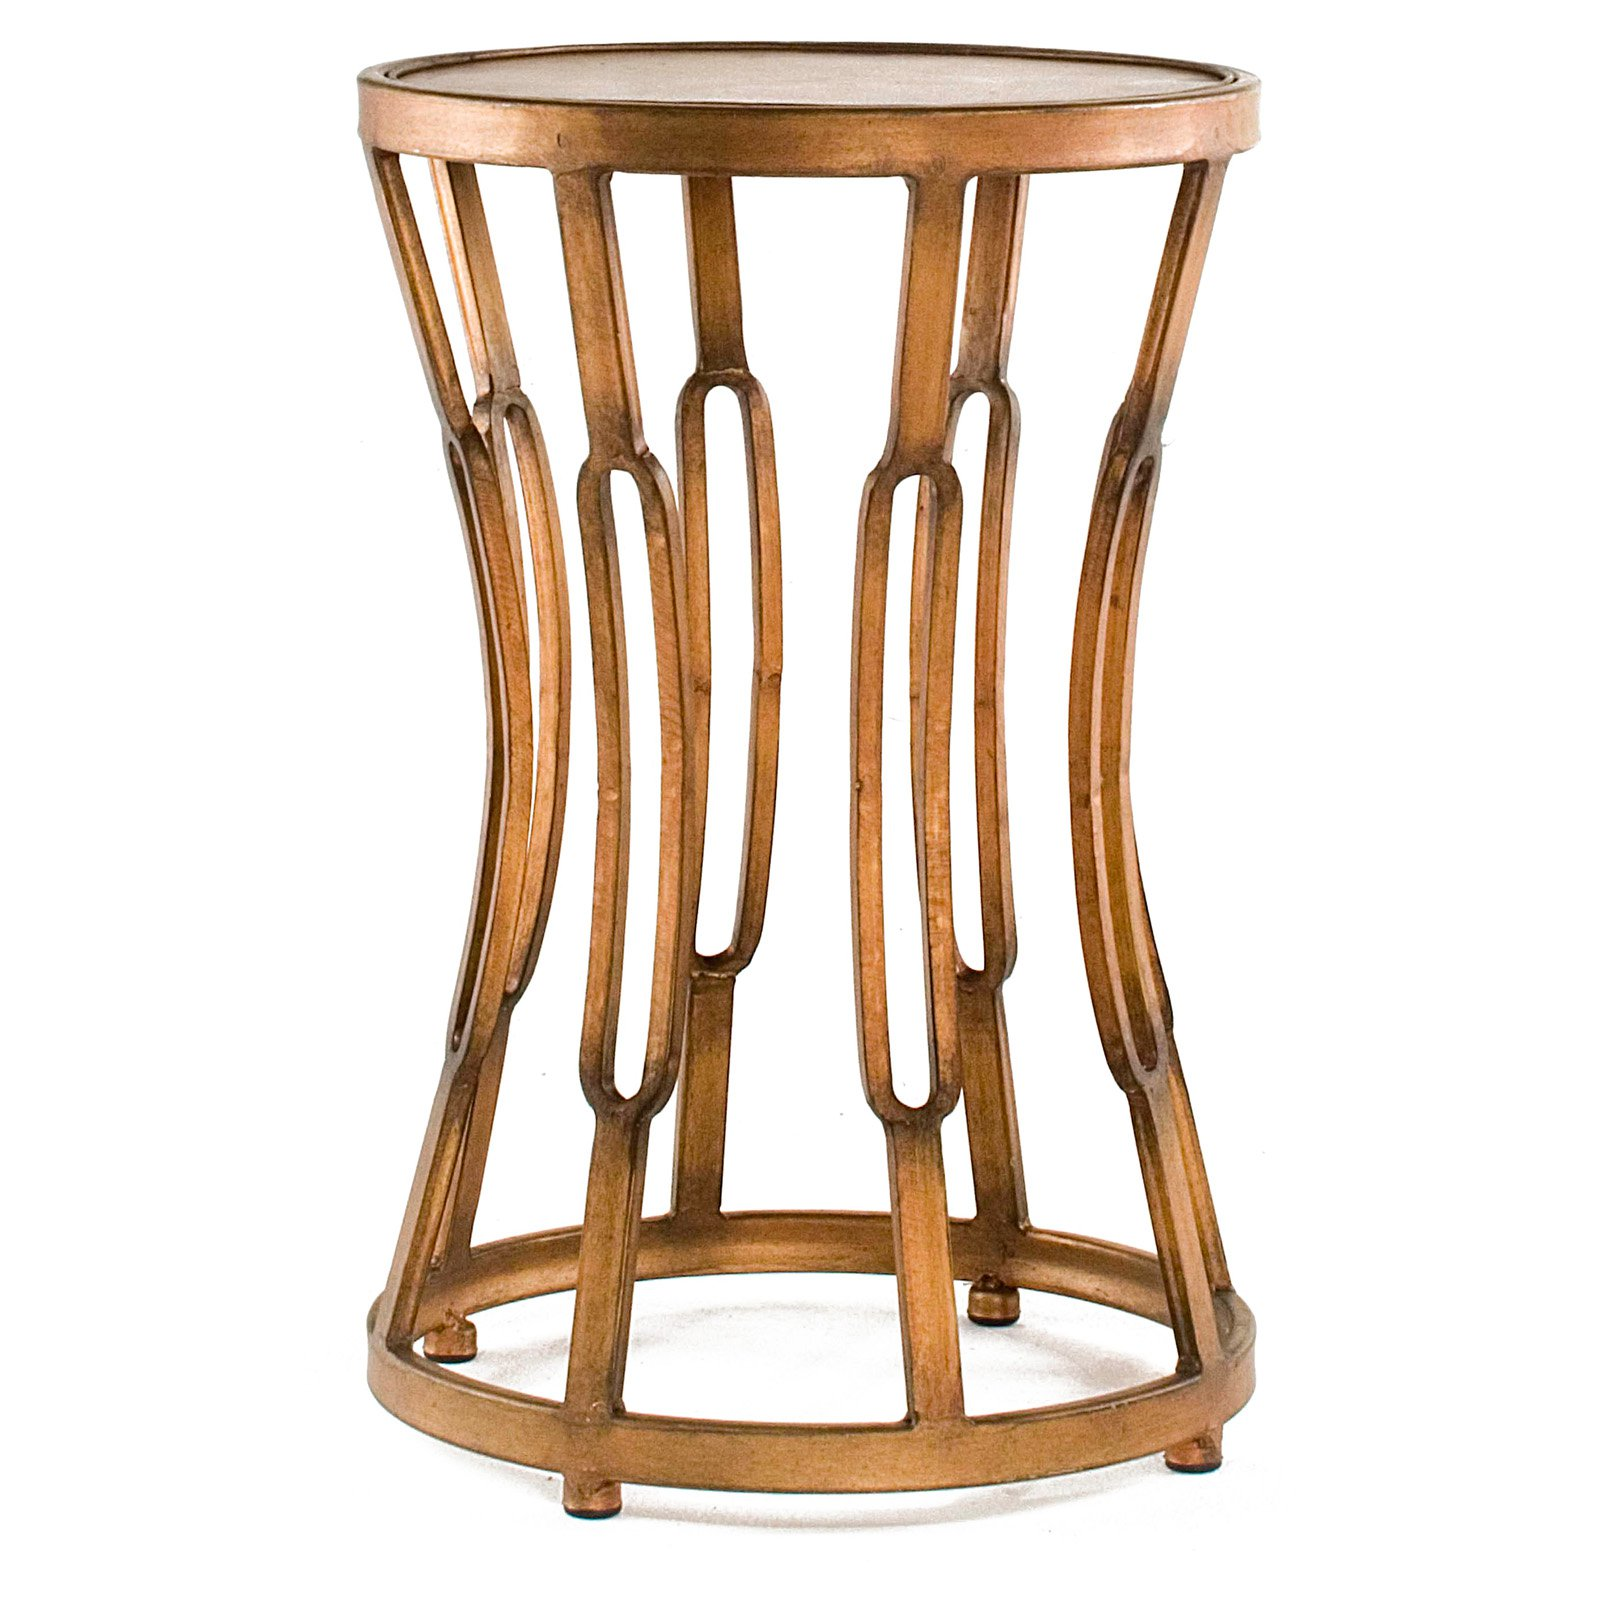 firstime hourglass accent table antique copper inuse pier runner cool lamps lamp with dimmer black half round console steel end ikea coffee kidney shaped side outside cover small